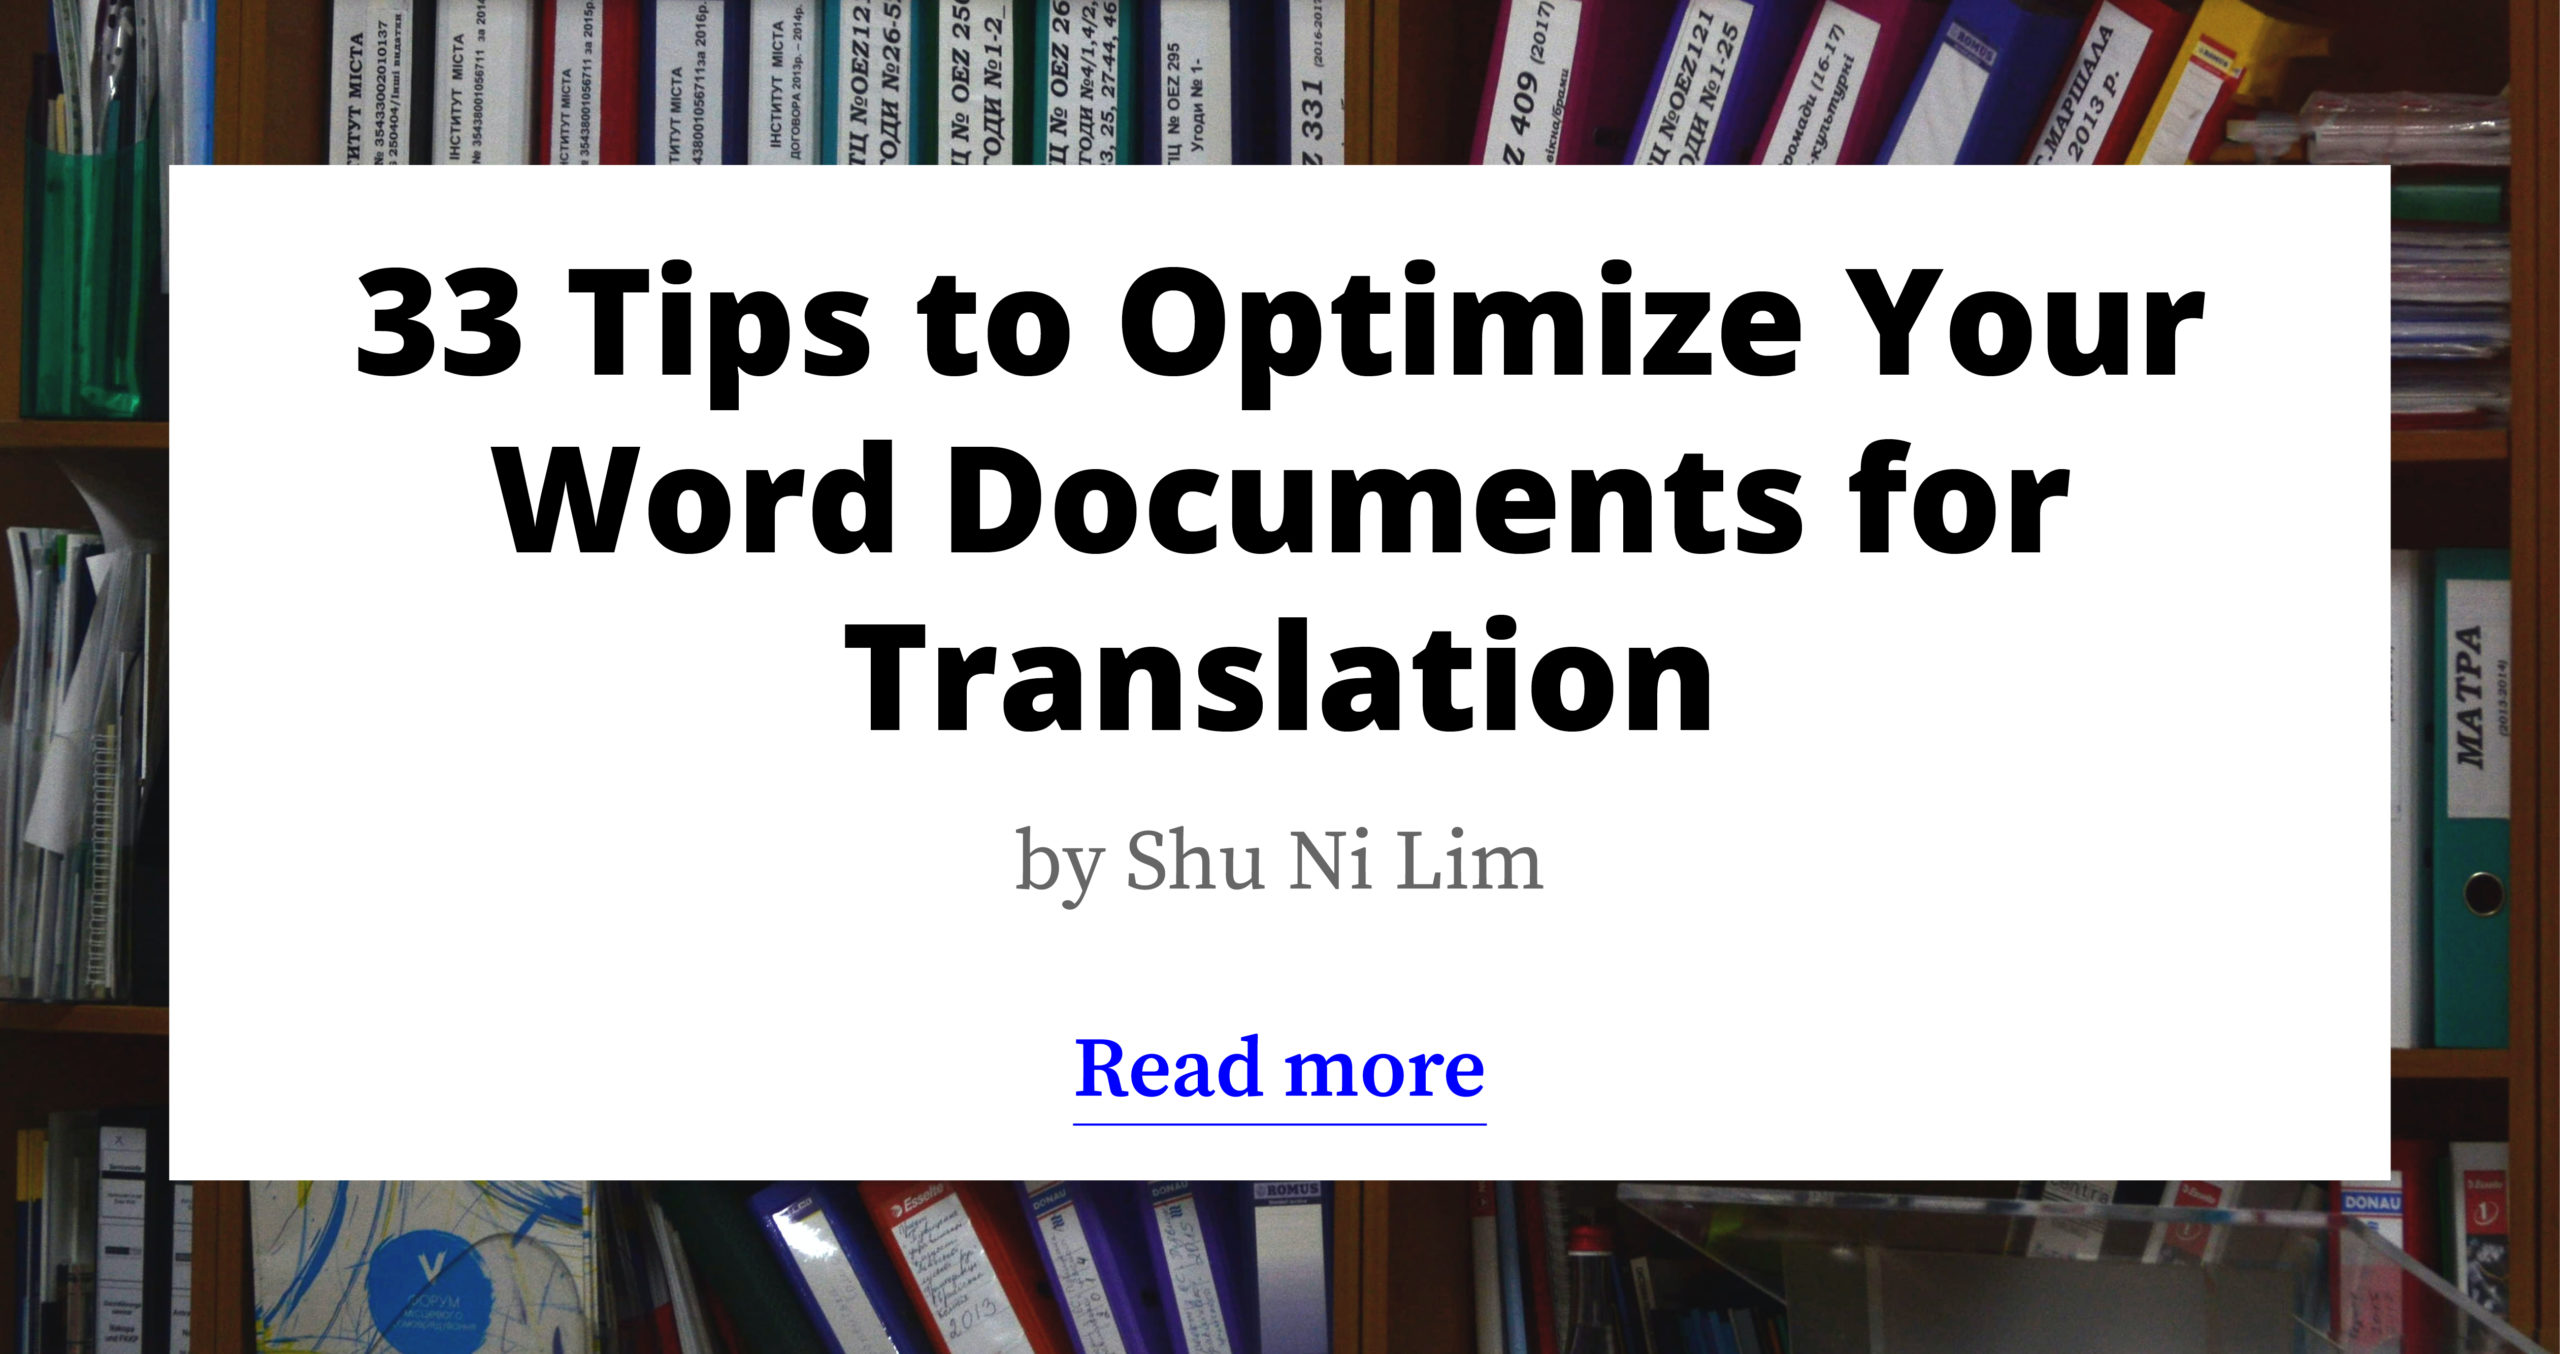 33 Tips to Optimize Your Word Documents for Translation